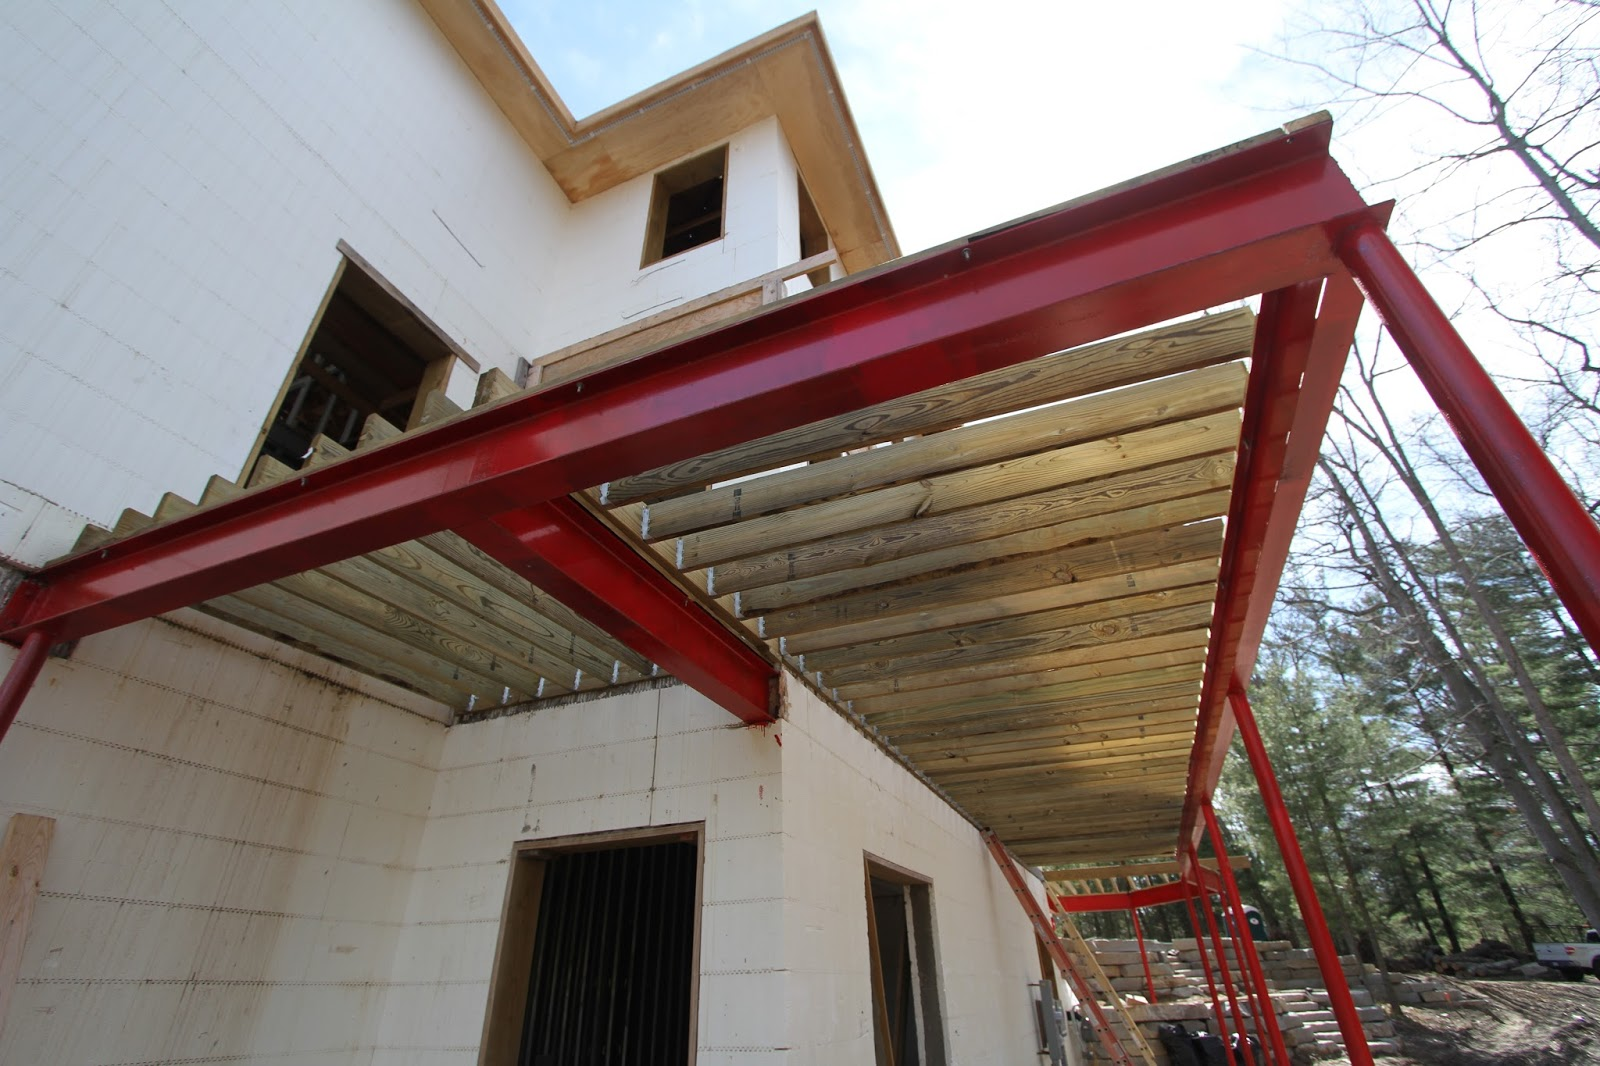 They Ve Finished Installing All The Deck Joists At 12 Ing In Anion Of Azek That We Ll Use Front House Still Needs